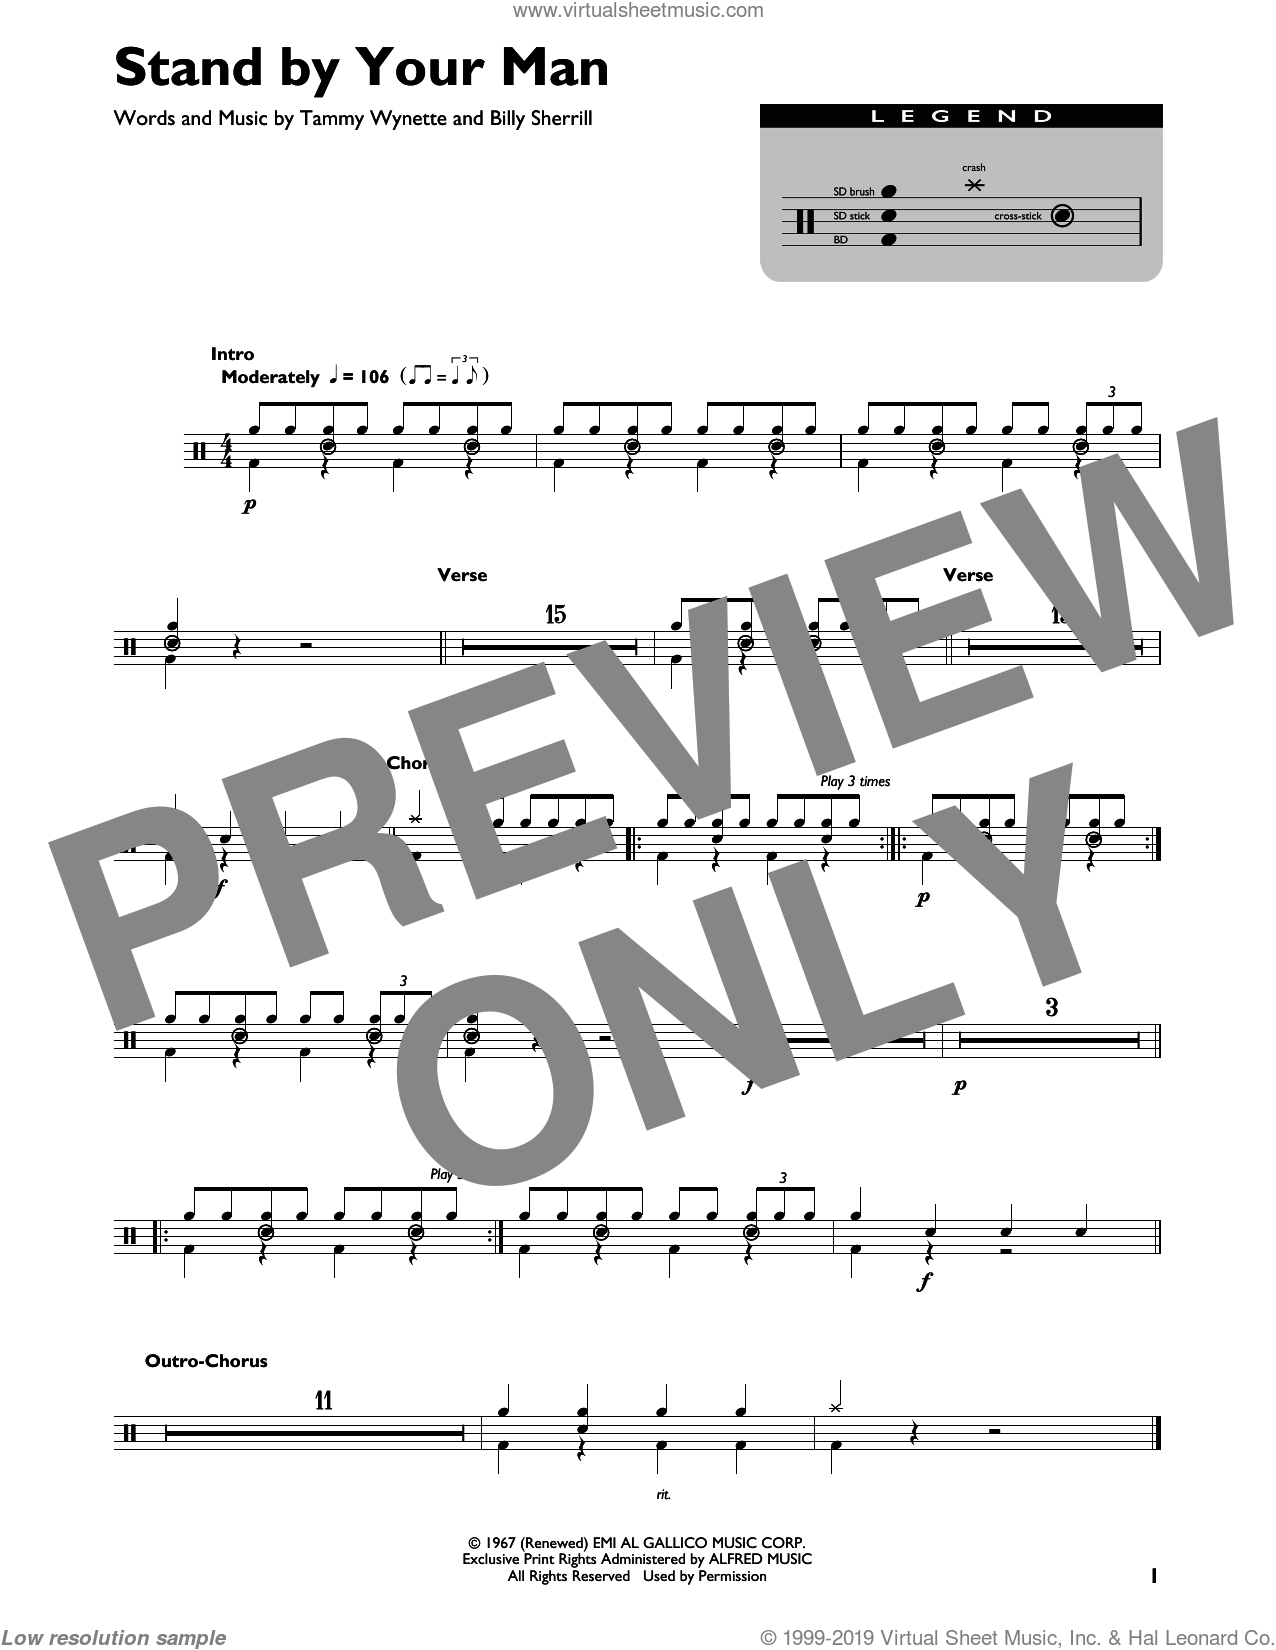 Stand By Your Man sheet music for drums by Tammy Wynette and Billy Sherrill, intermediate skill level